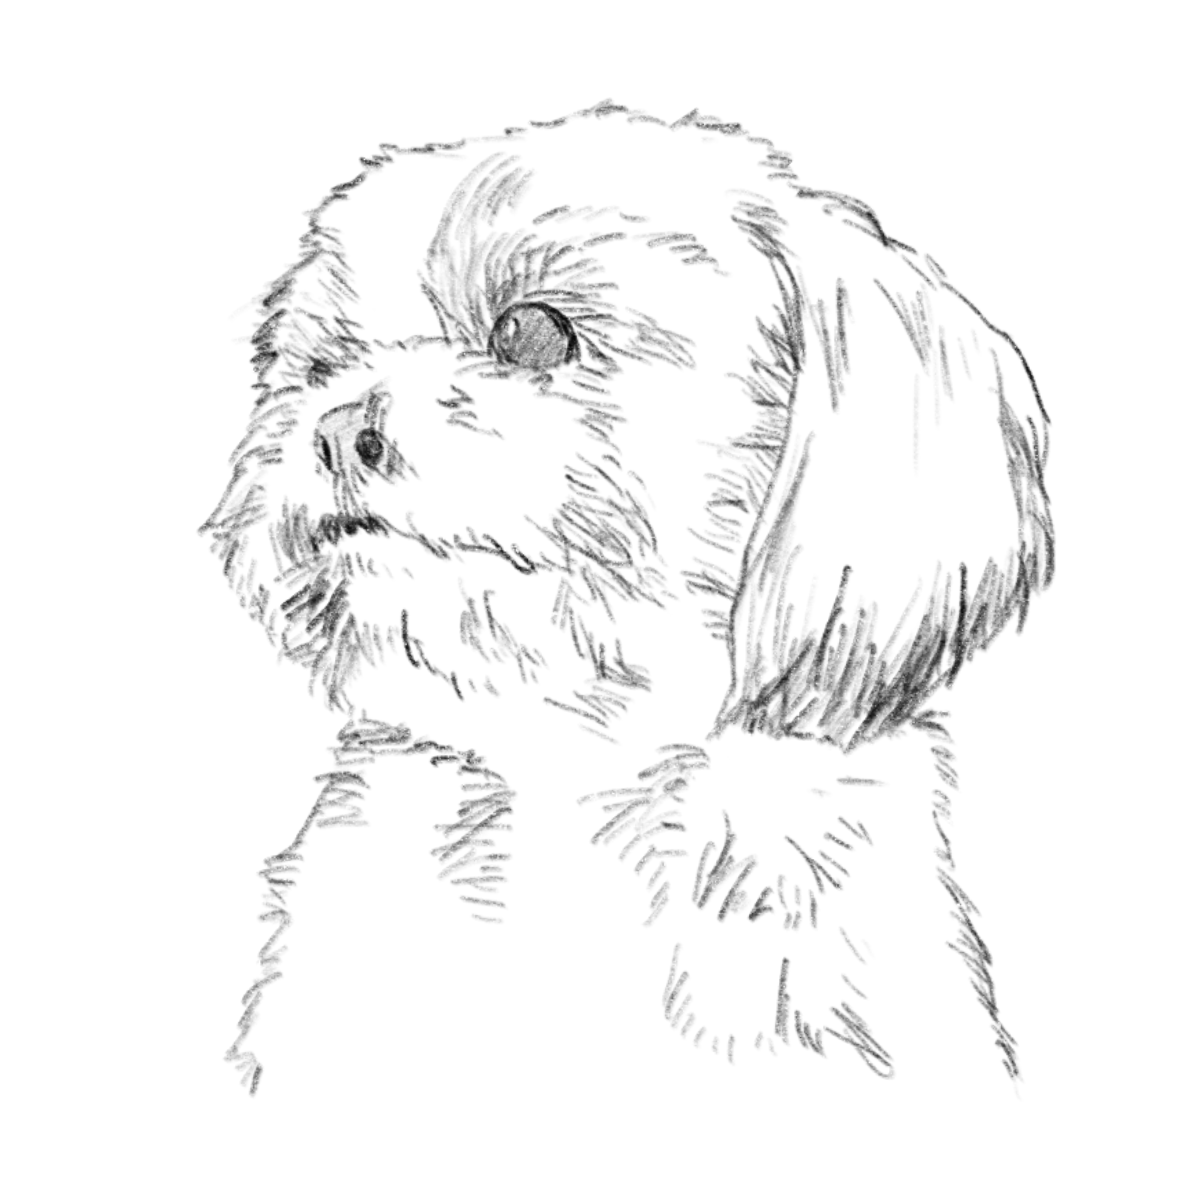 dog(shih tzu) pencil drawing 01